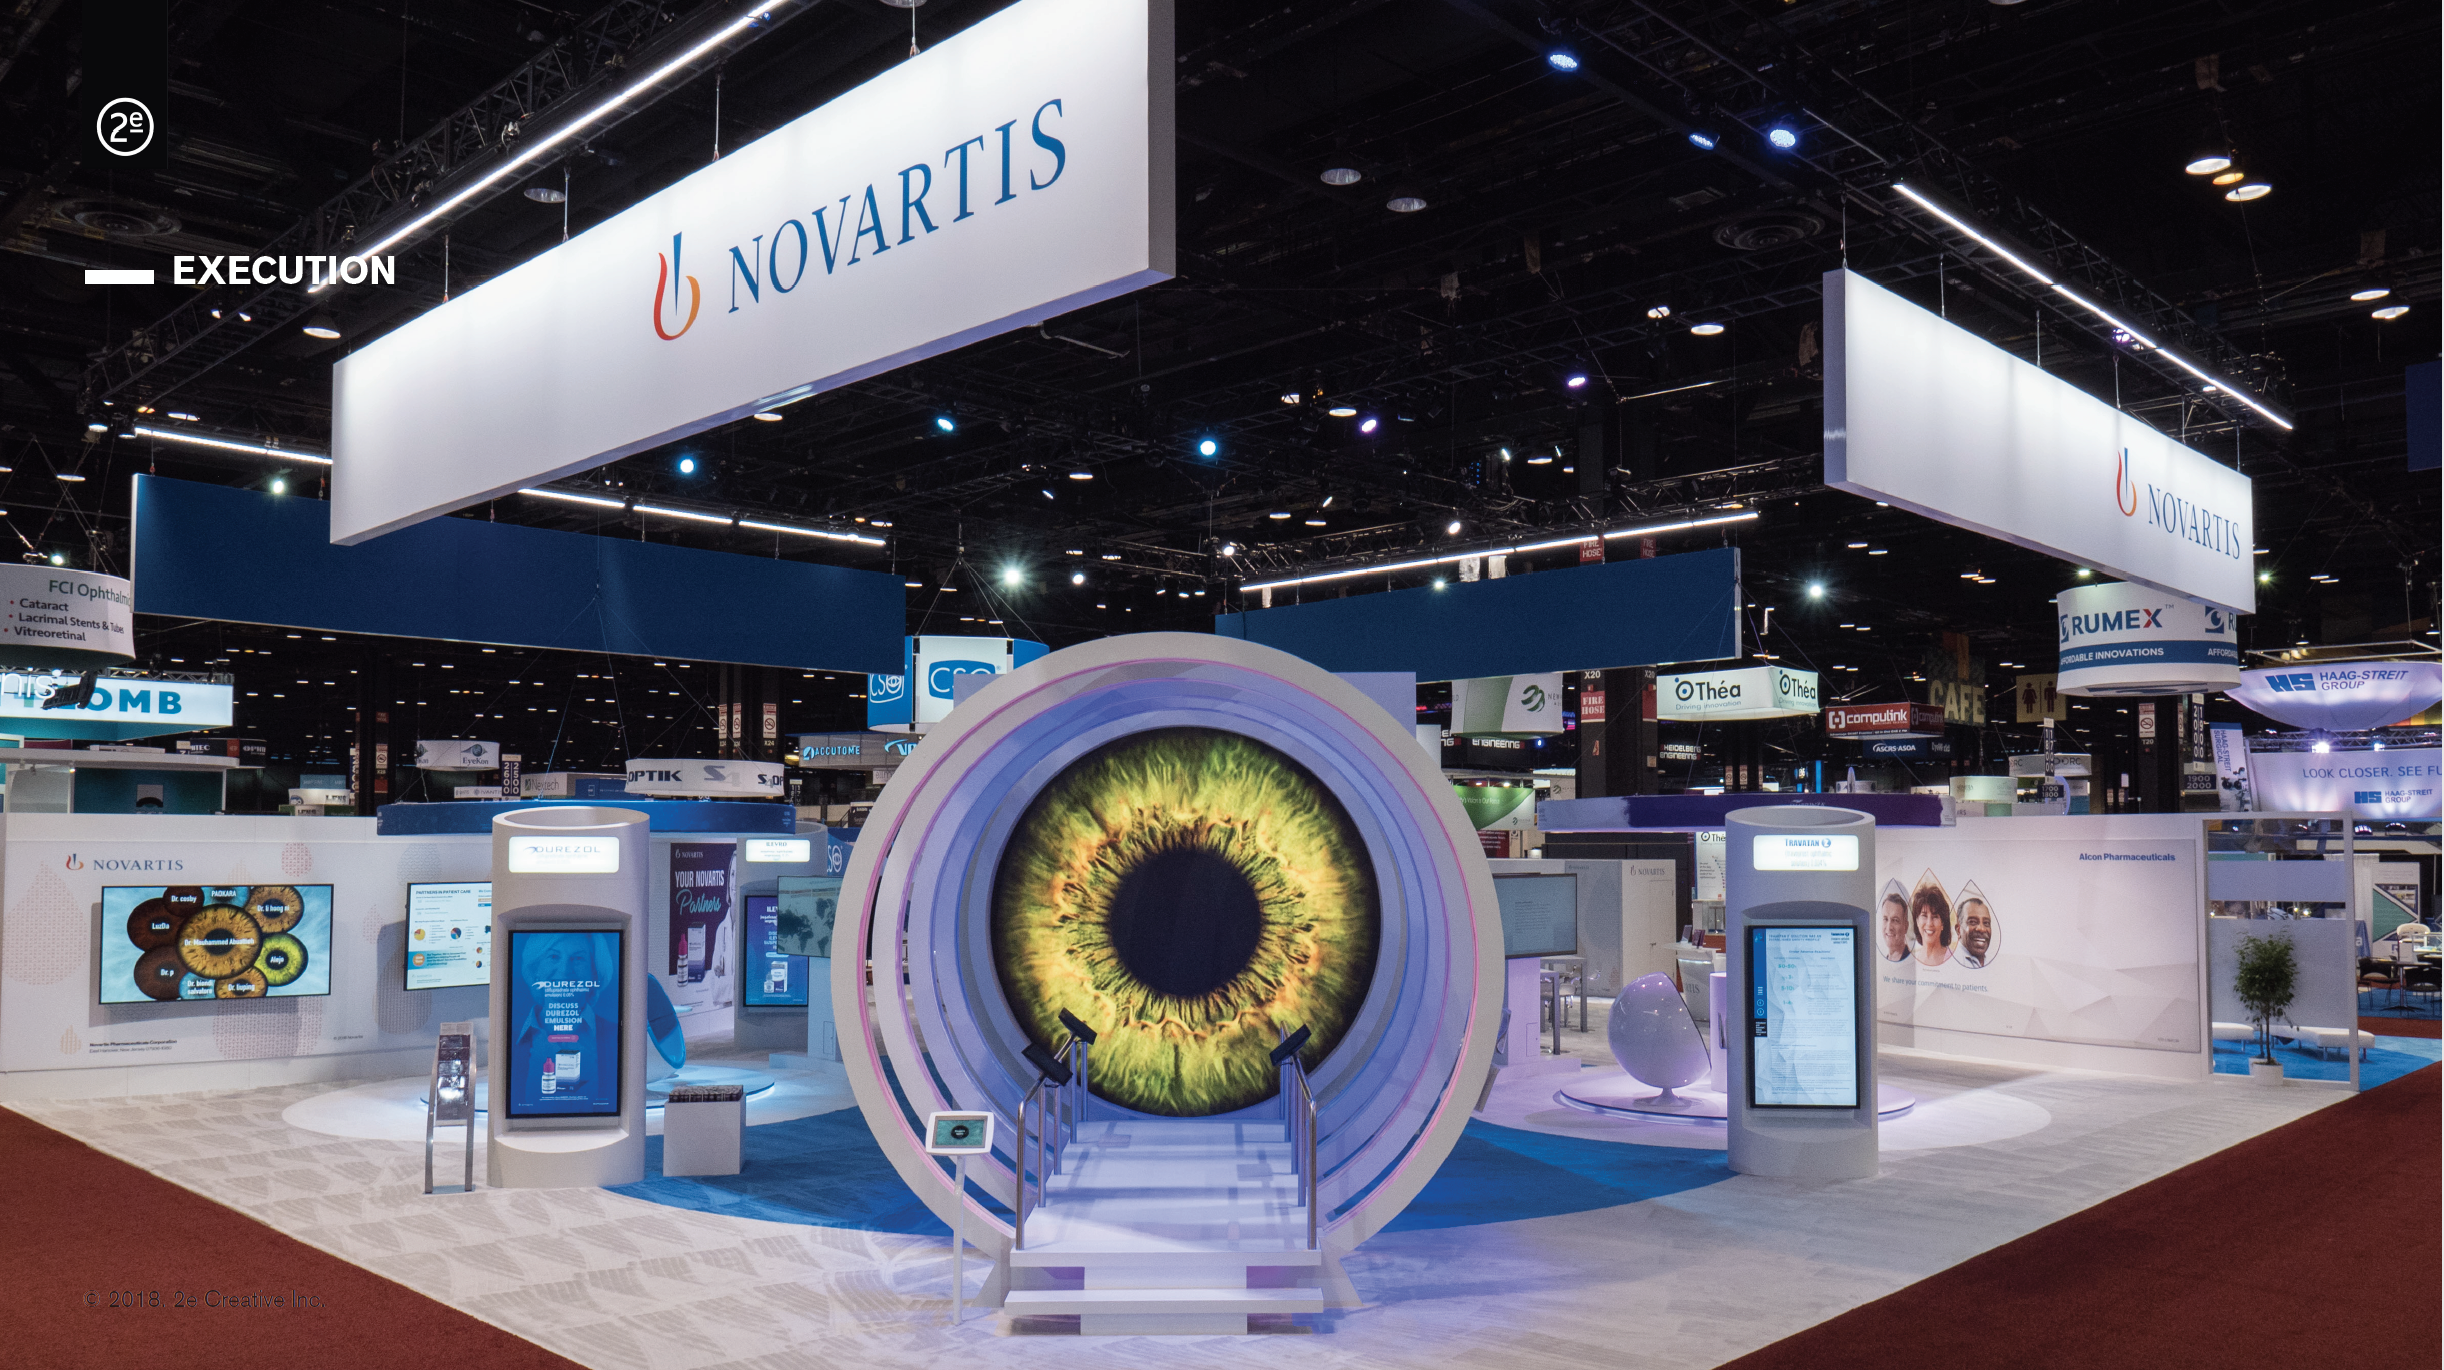 Regulations restrict the monetary value of giveaways, so we provided eye care professionals with irresistible interactivity. After keying in their name and selecting an eye color, attendees looked forward to posing for a photo with their customized eye in the multi-colored portal.